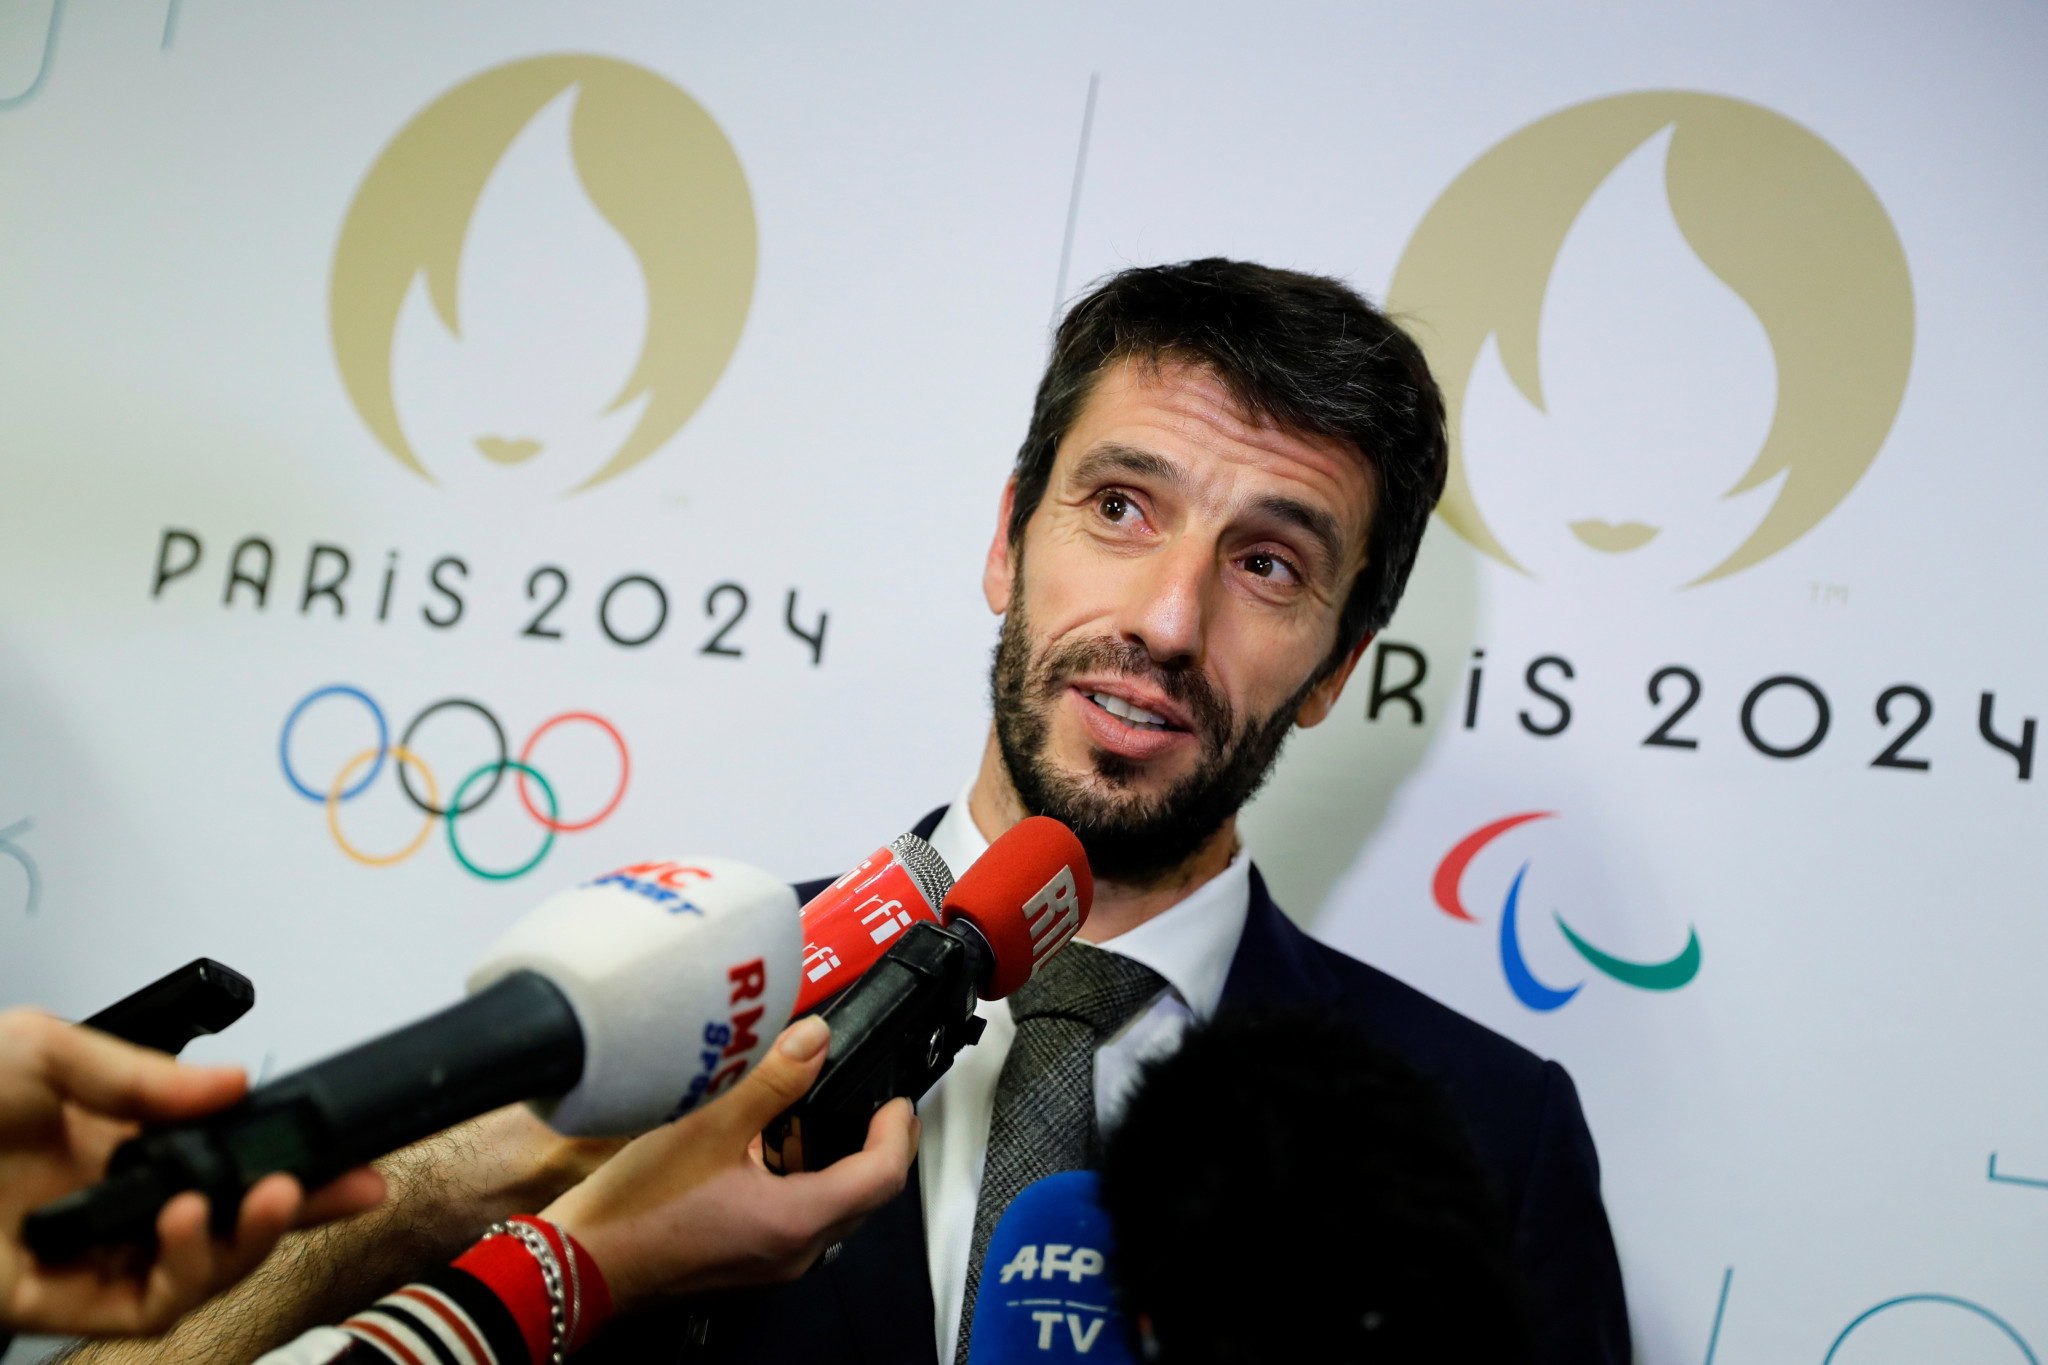 France will lose its representative on the IOC Athletes' Commission when Paris 2024 President Tony Estanguet's eight-year term concludes later this year, with Martin Fourcade set to replace him ©Getty Images